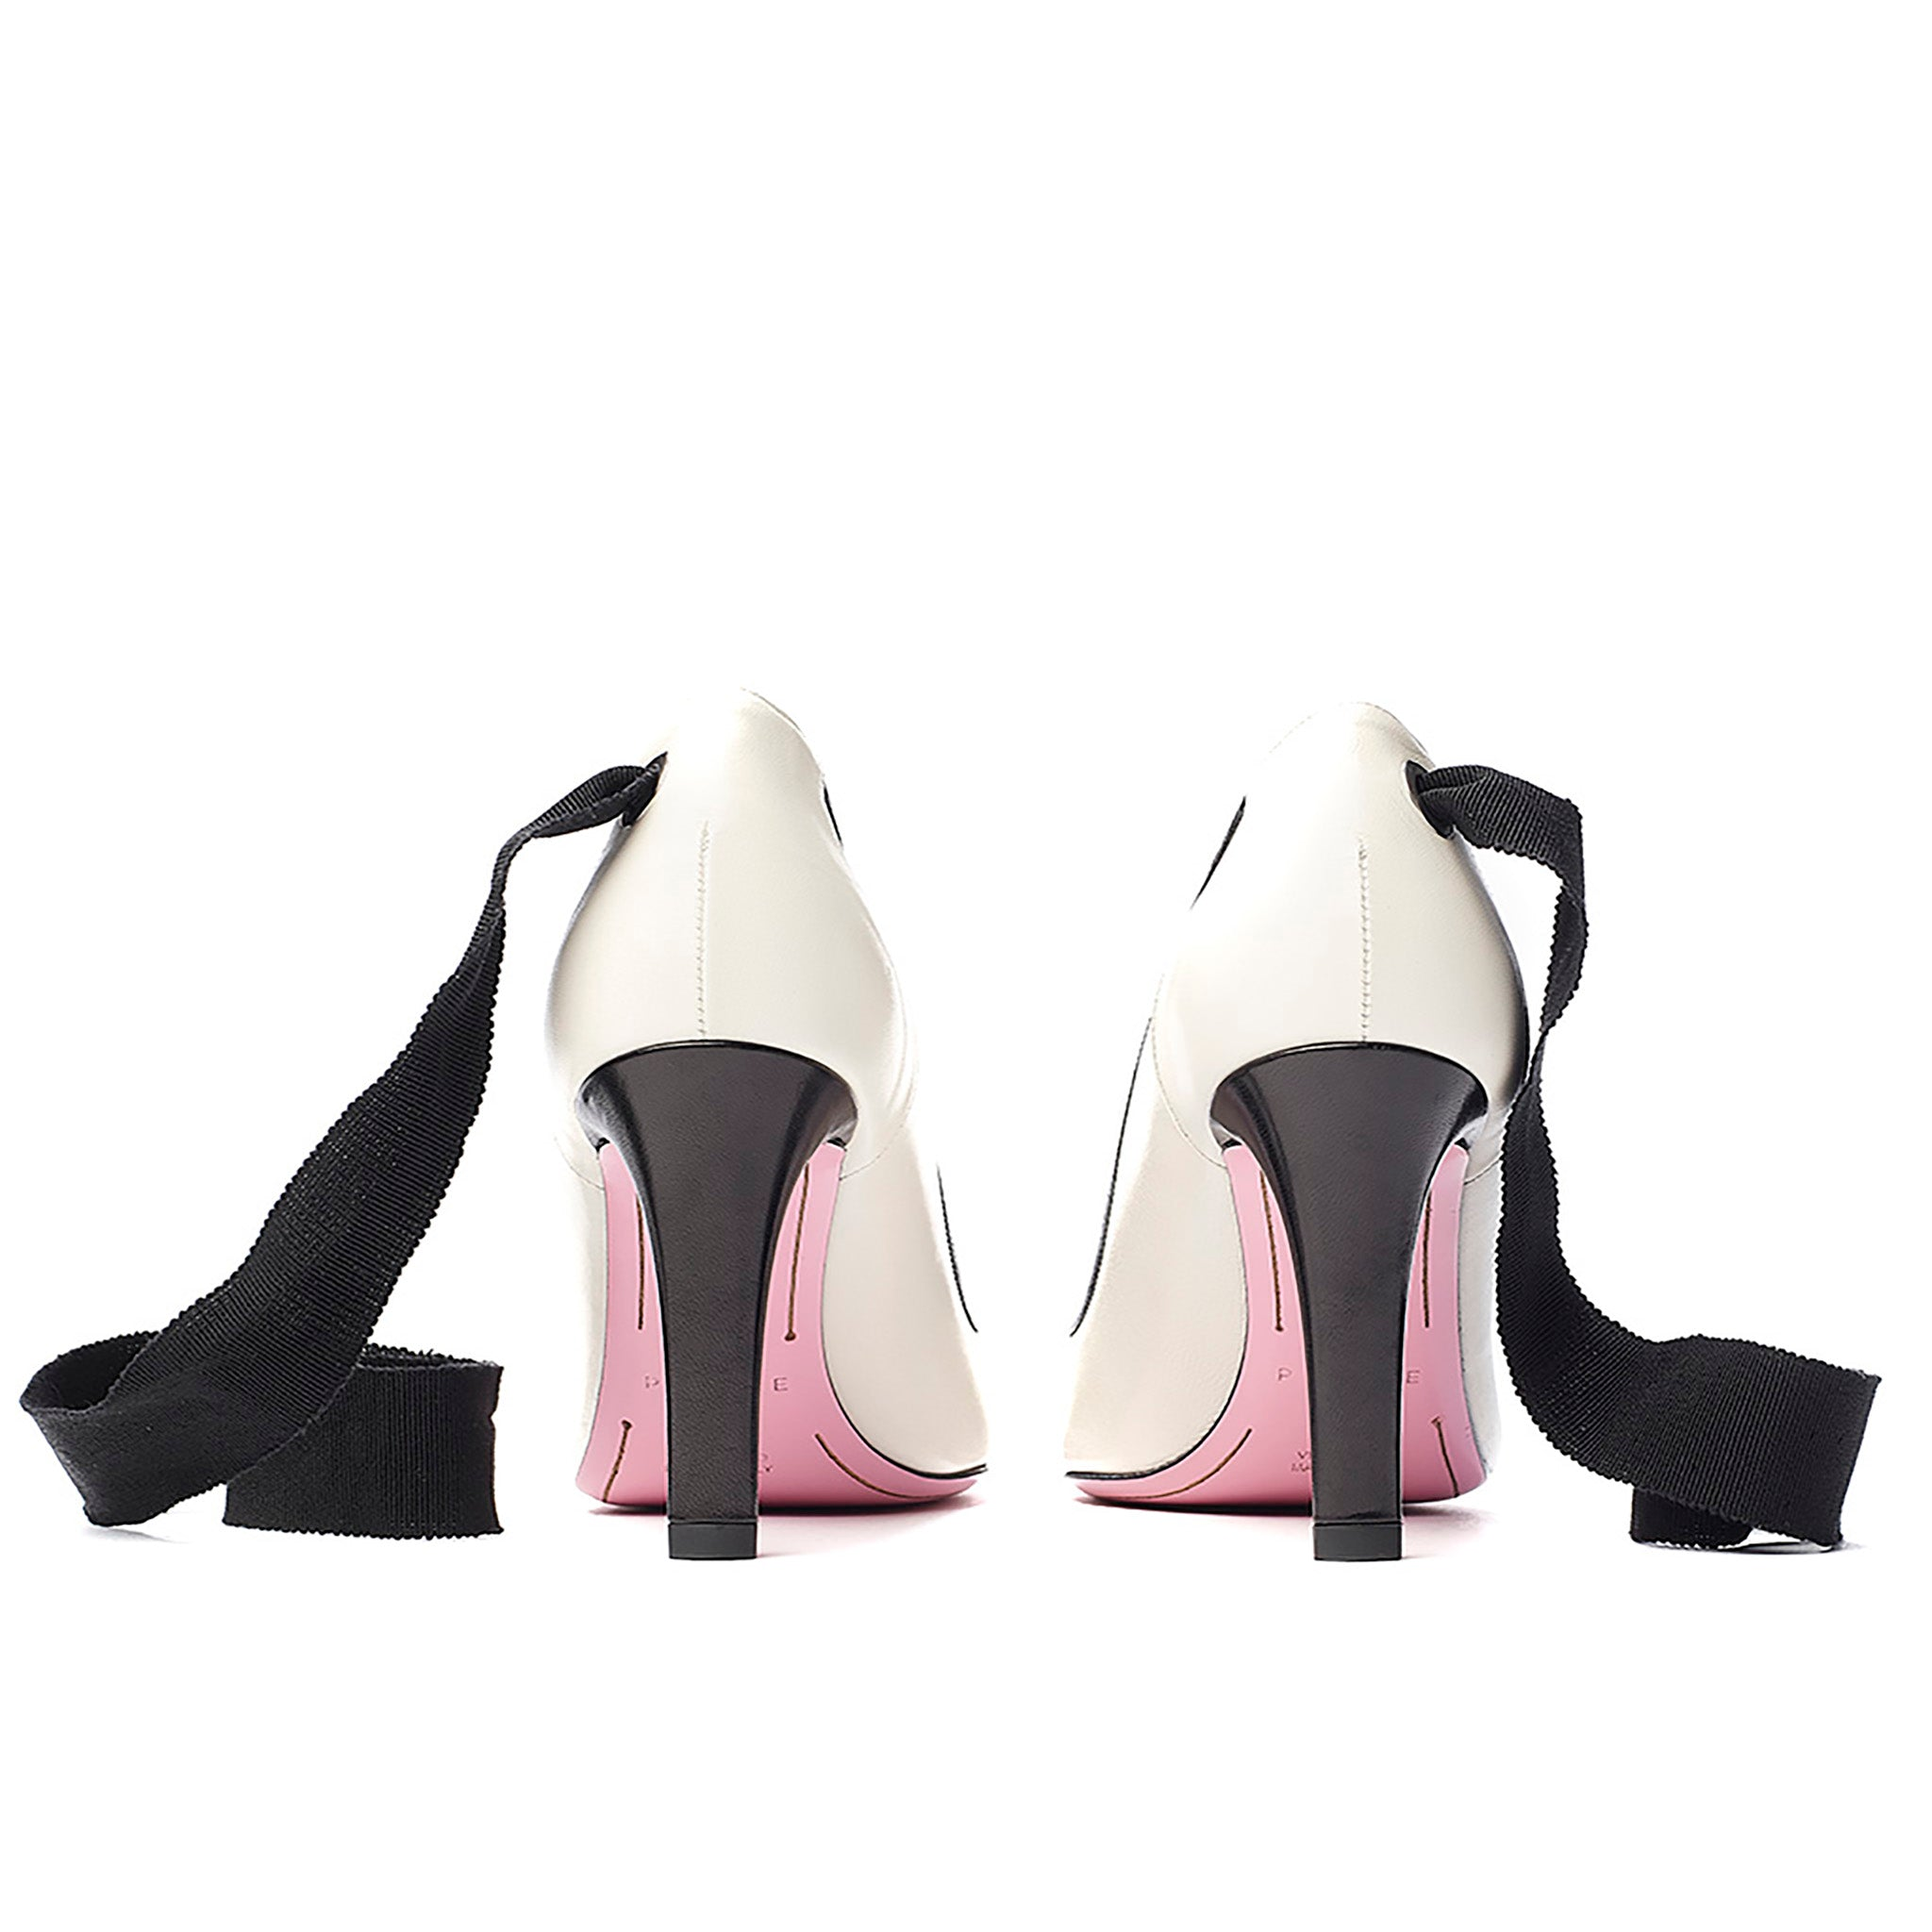 Ribbon tie pump in cream/black leather back view